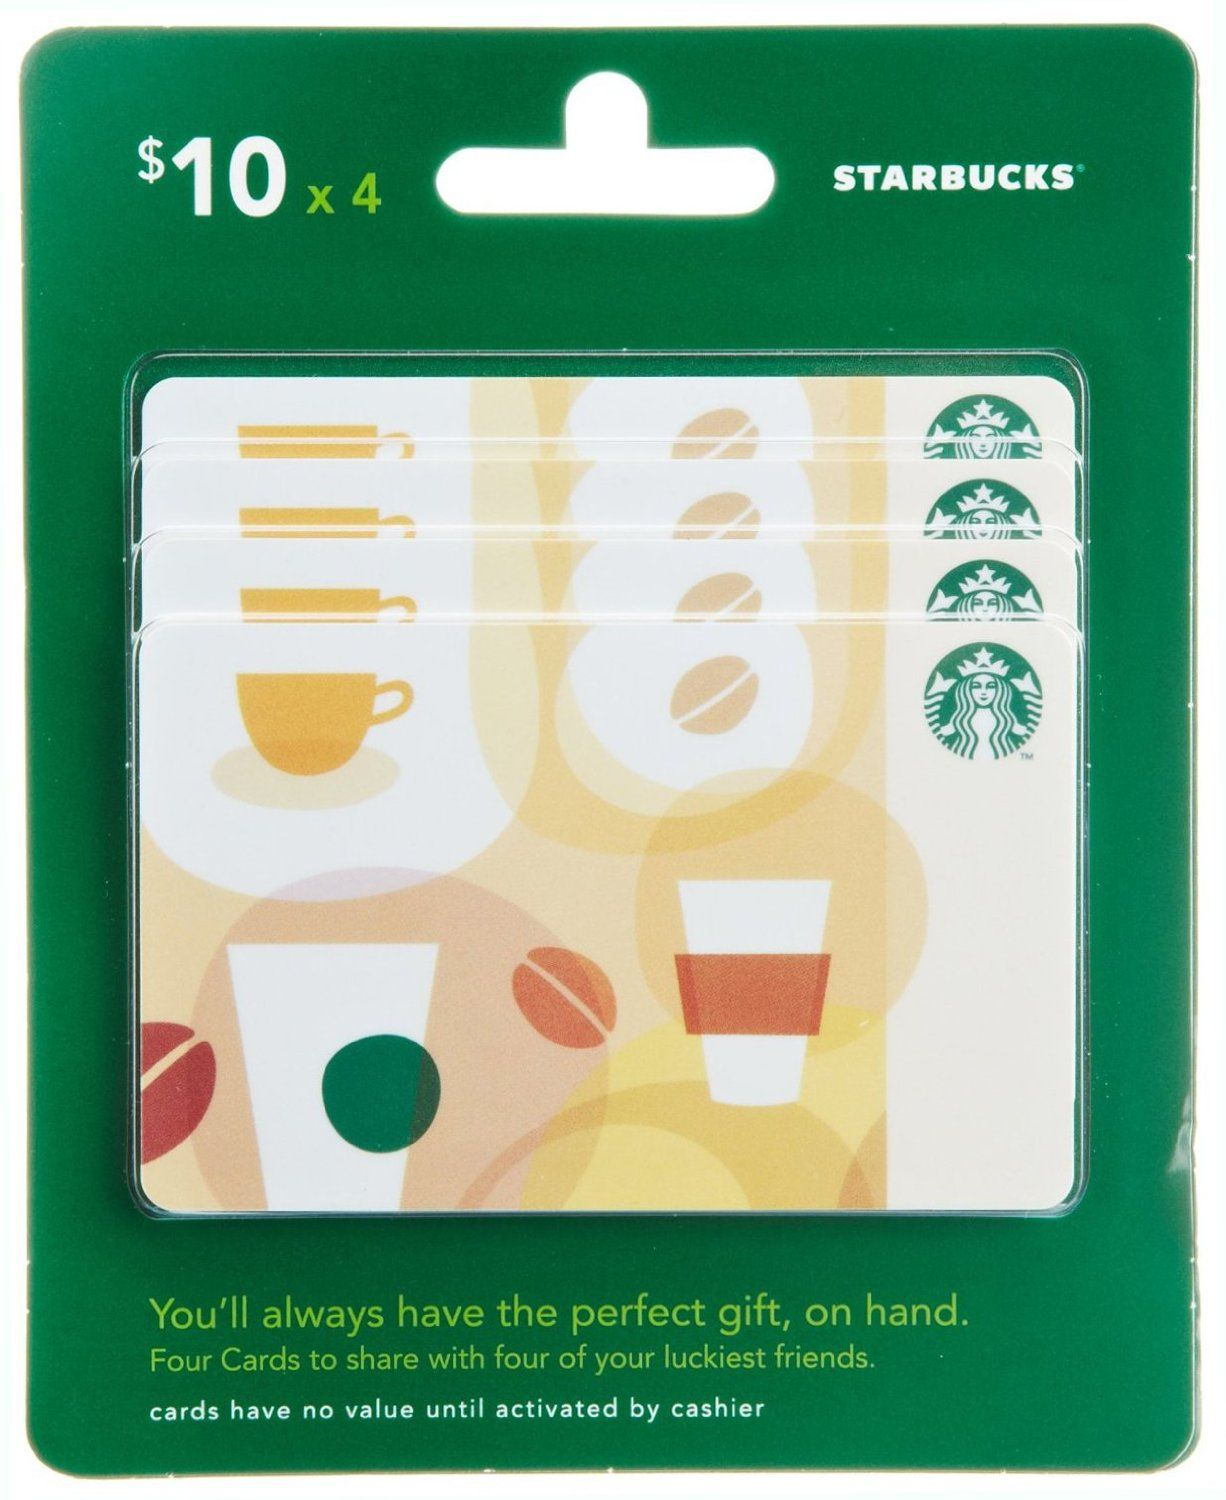 starbucks gift cards multipack of 4 10 gift cards where can i buy an amazon. Black Bedroom Furniture Sets. Home Design Ideas